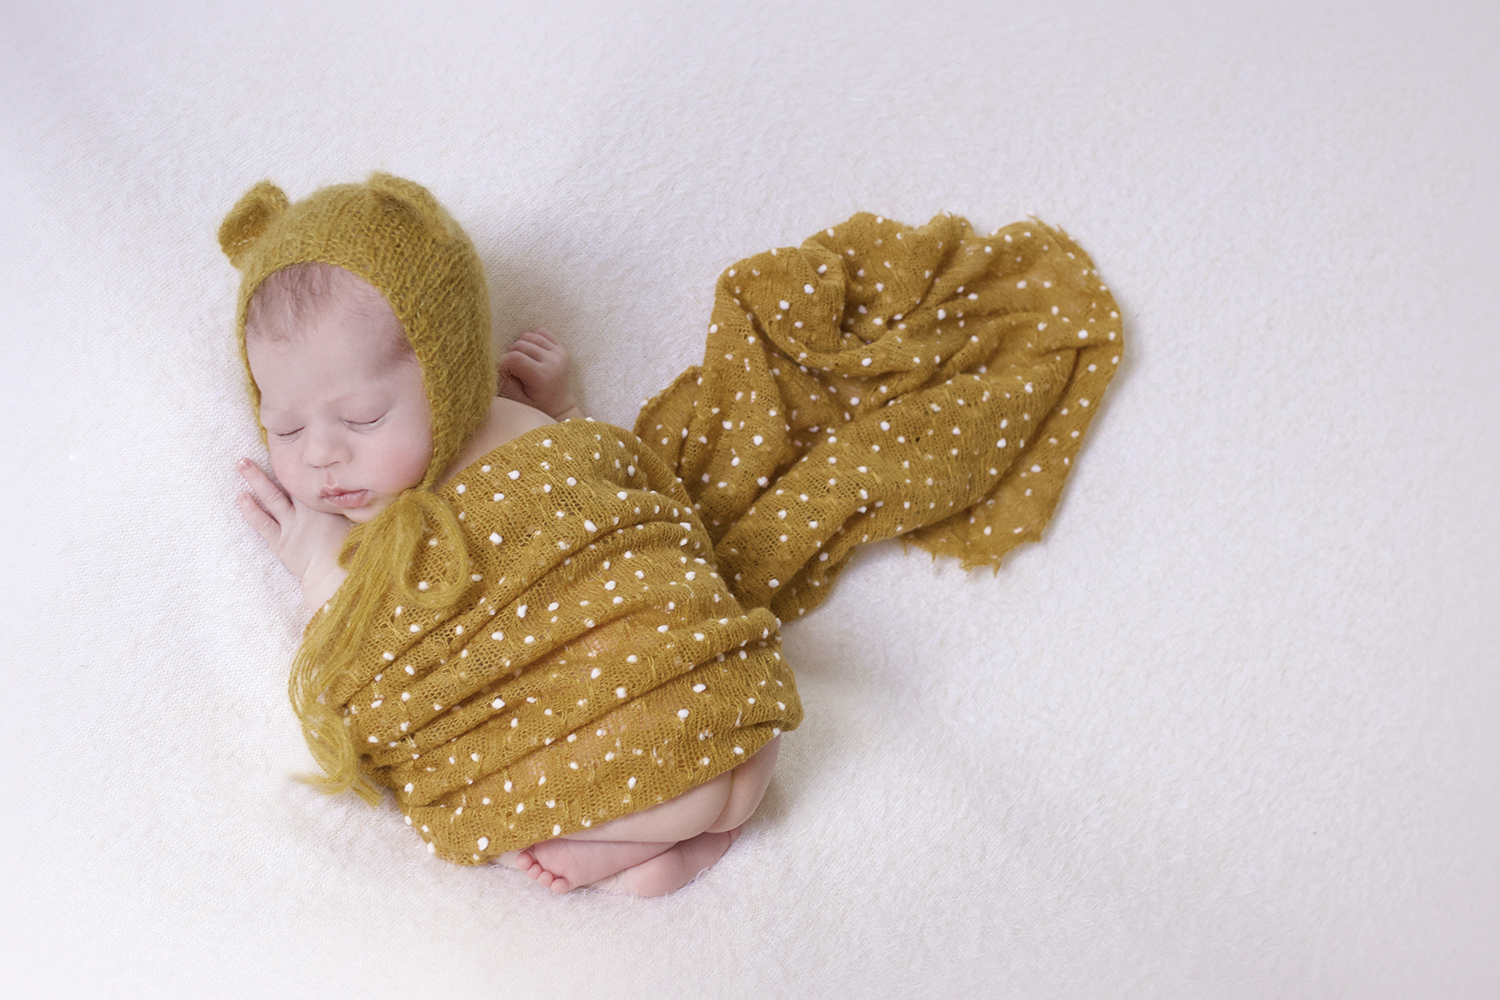 Newborn baby boy sleeping on cream blanket with mustard wrap and bear knit bonnet